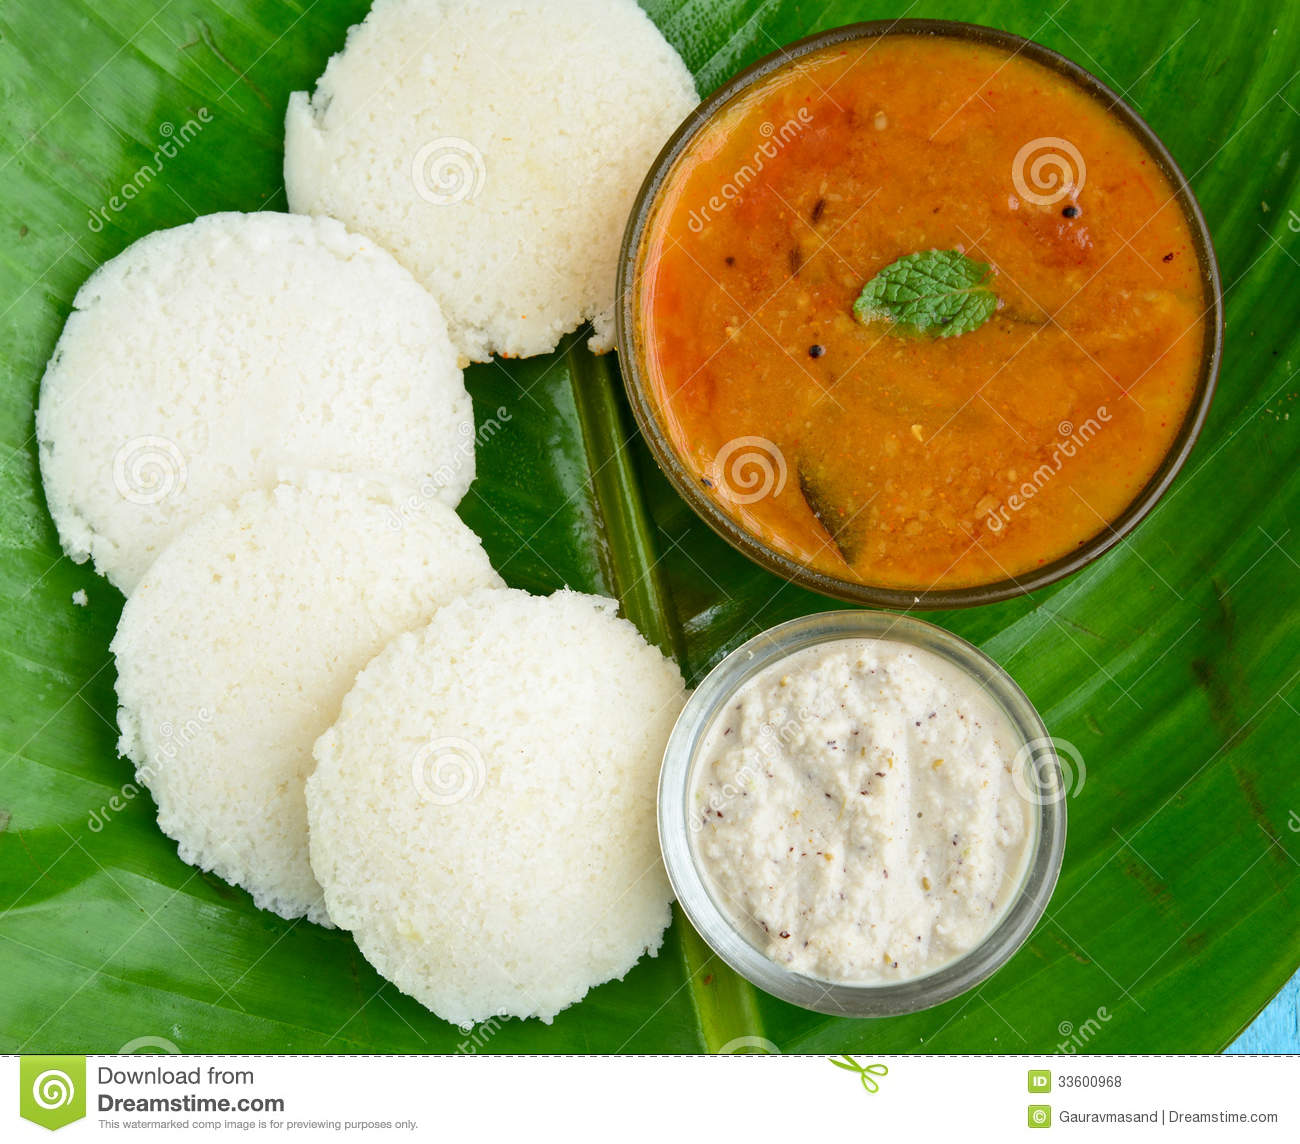 Saturated cities, now even Idli vada seller can get loan